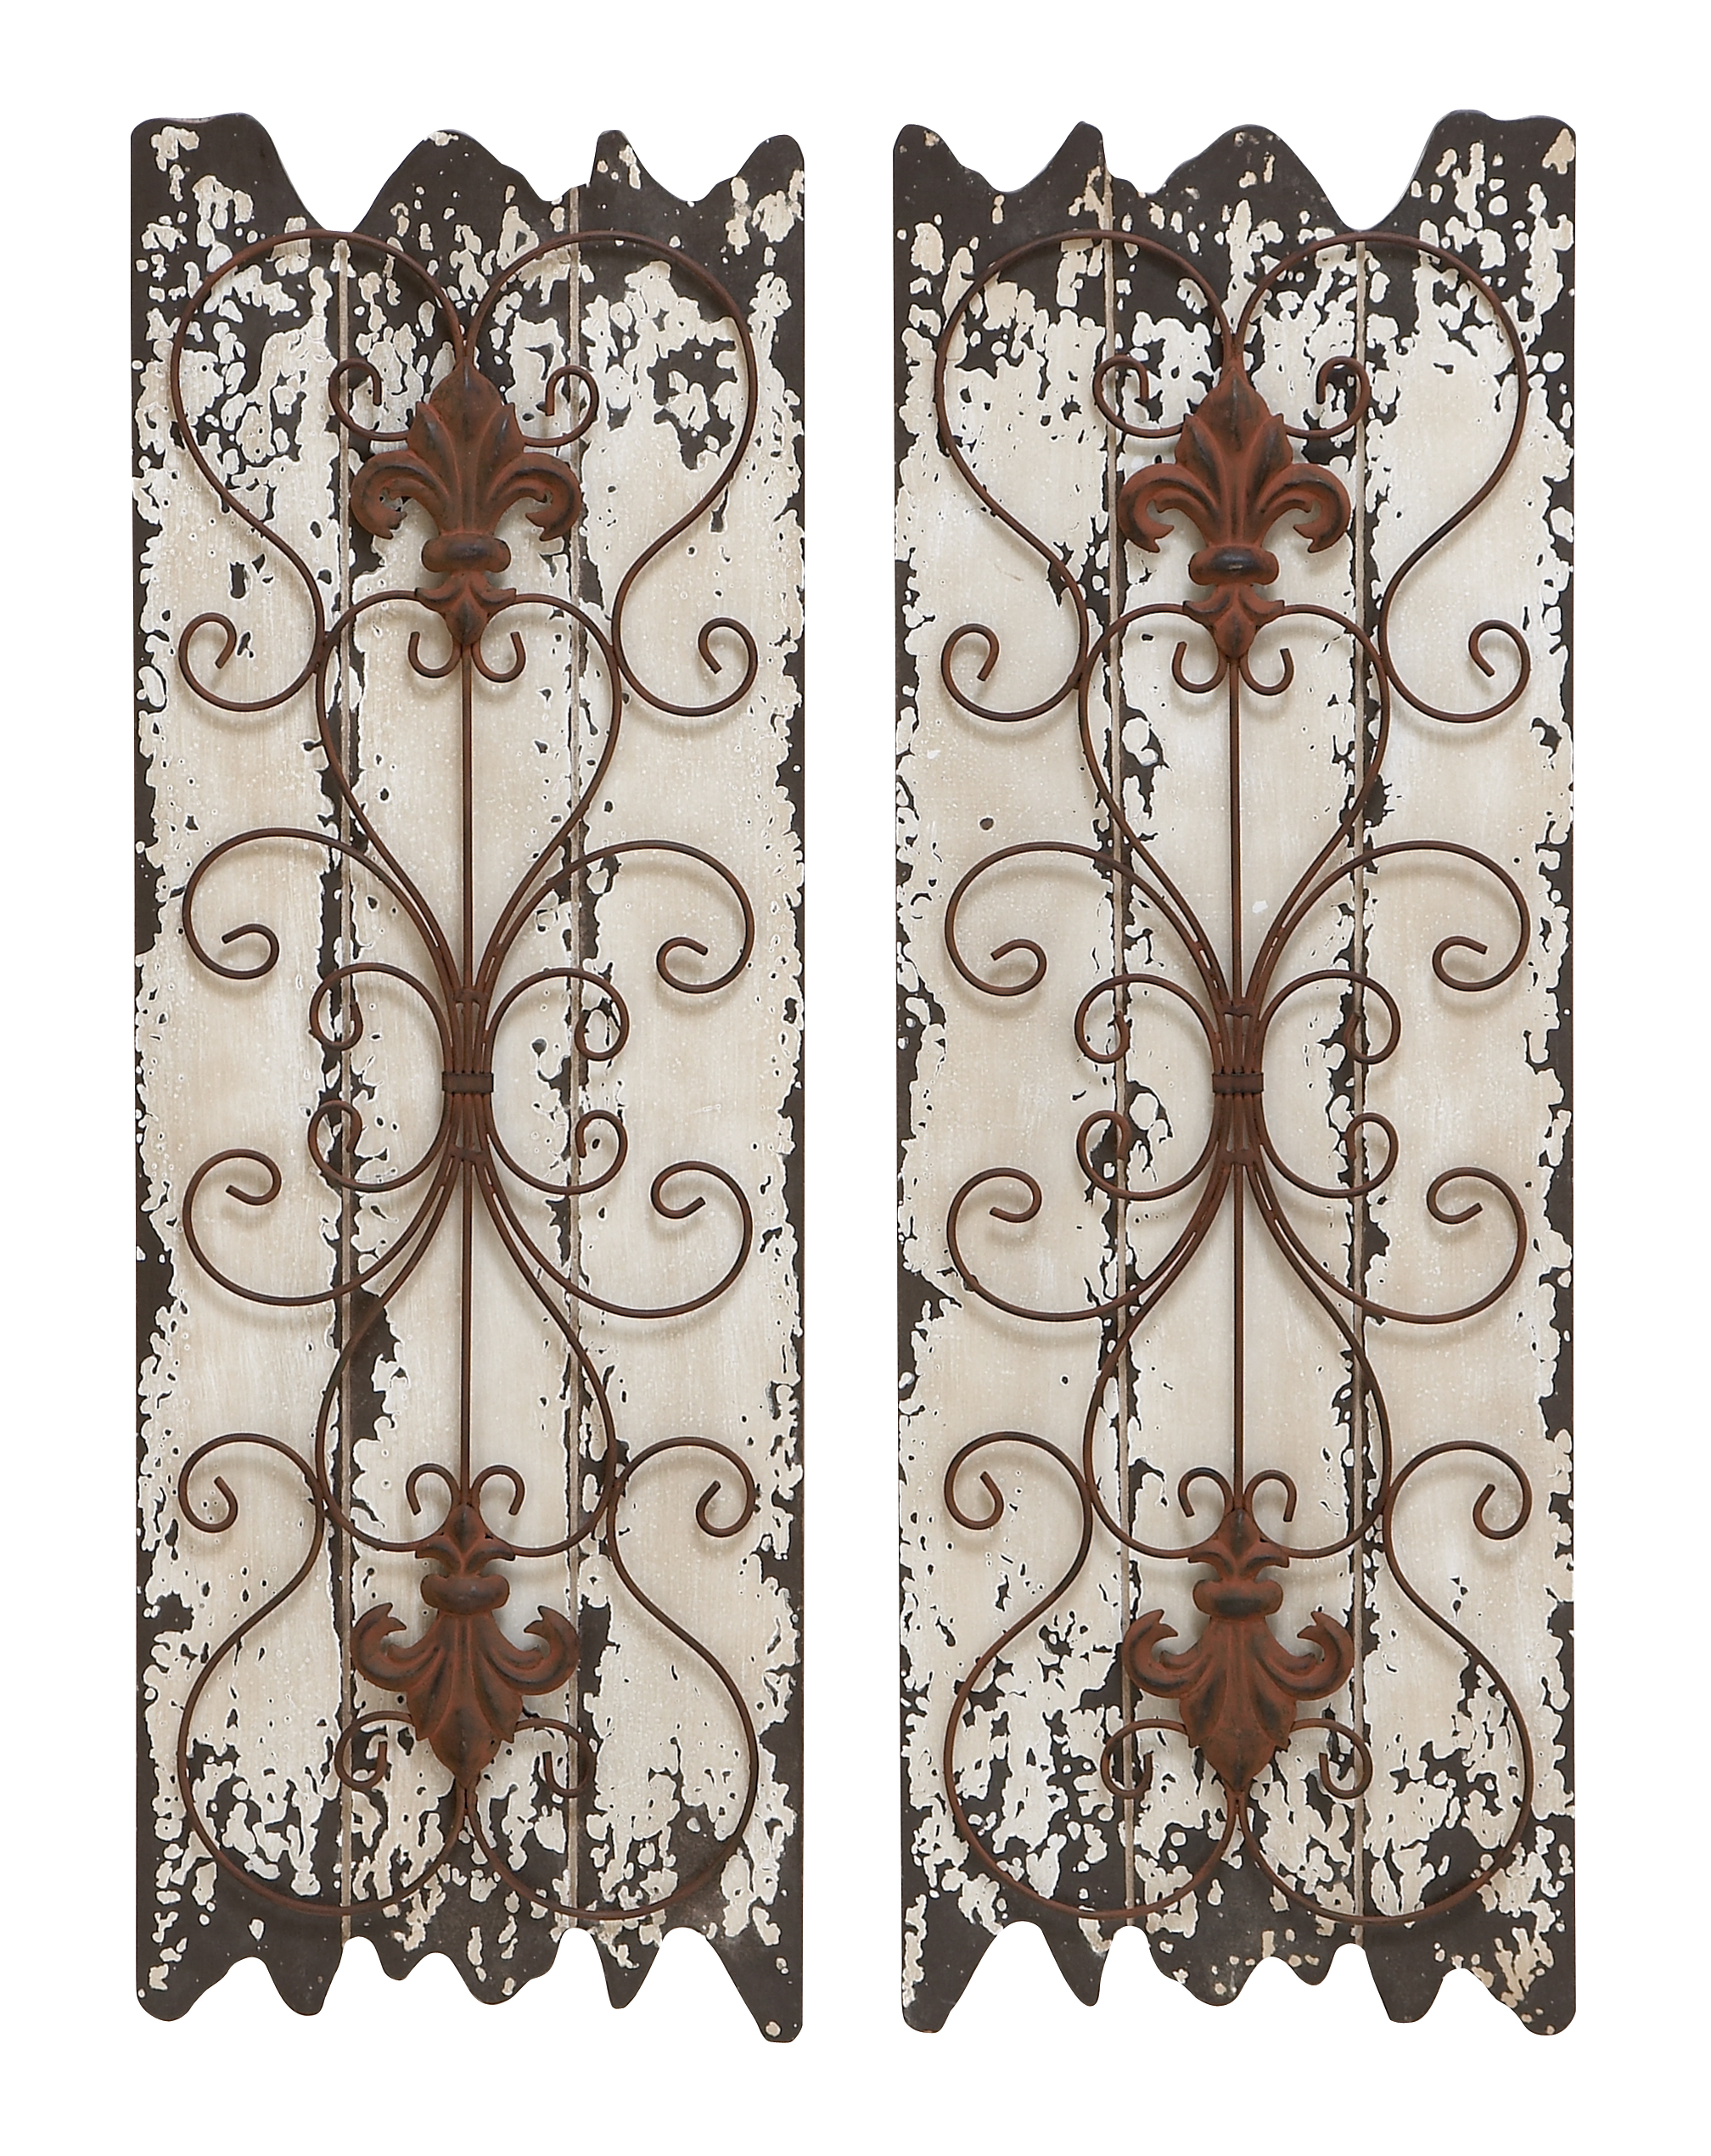 Decmode Rustic 32 Inch Wood and Metal Jagged-Edged Wall Decor Set of 2 by DecMode